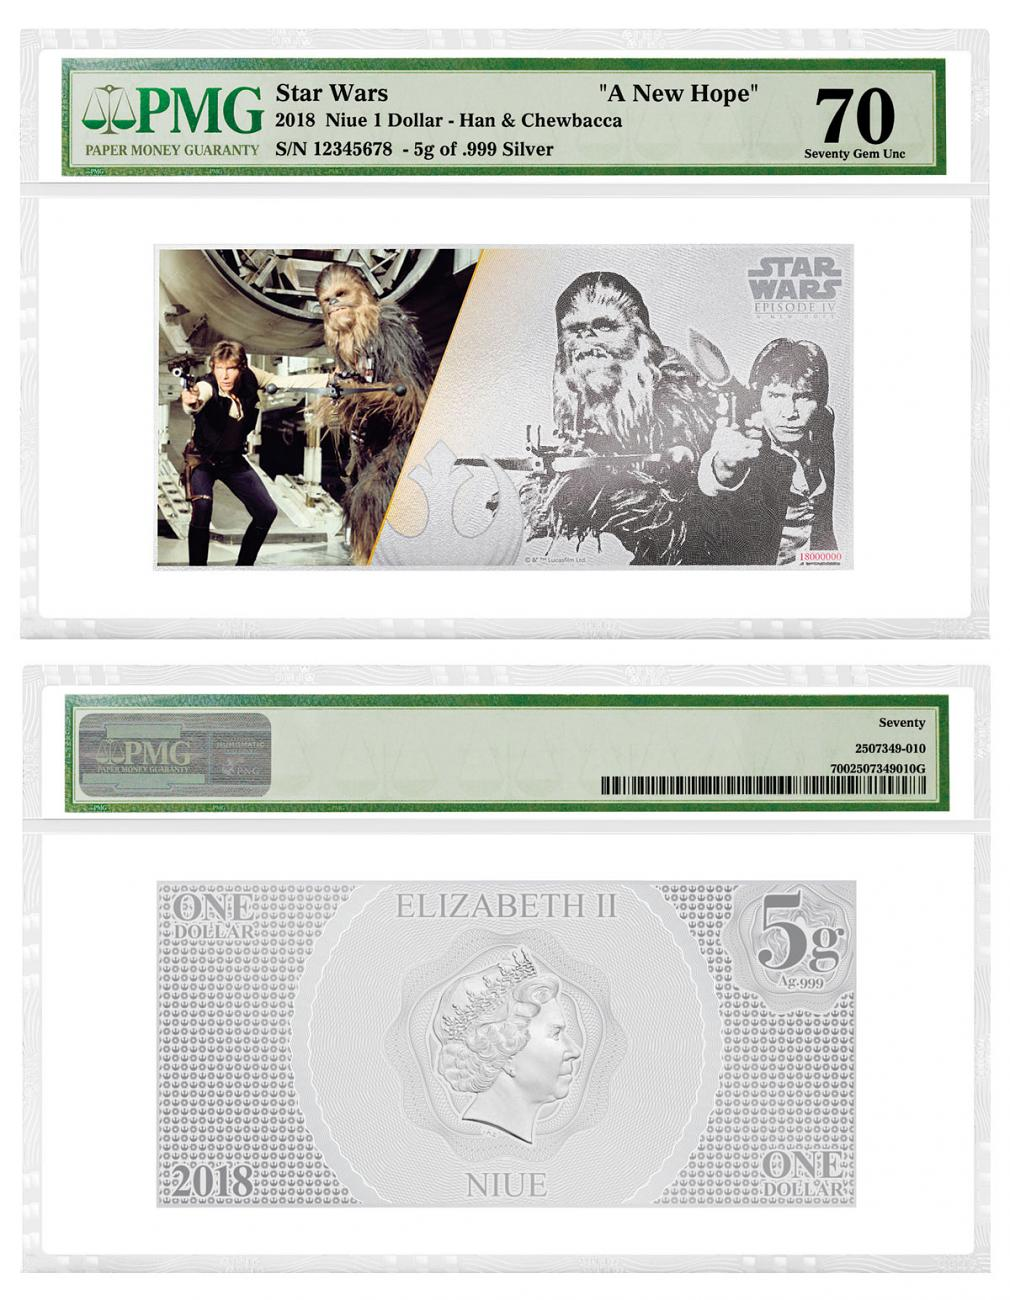 2018 Niue Star Wars: A New Hope - Han Solo and Chewbacca Foil Note 5 g Silver Colorized Proof $1 Coin PMG Gem Unc 70